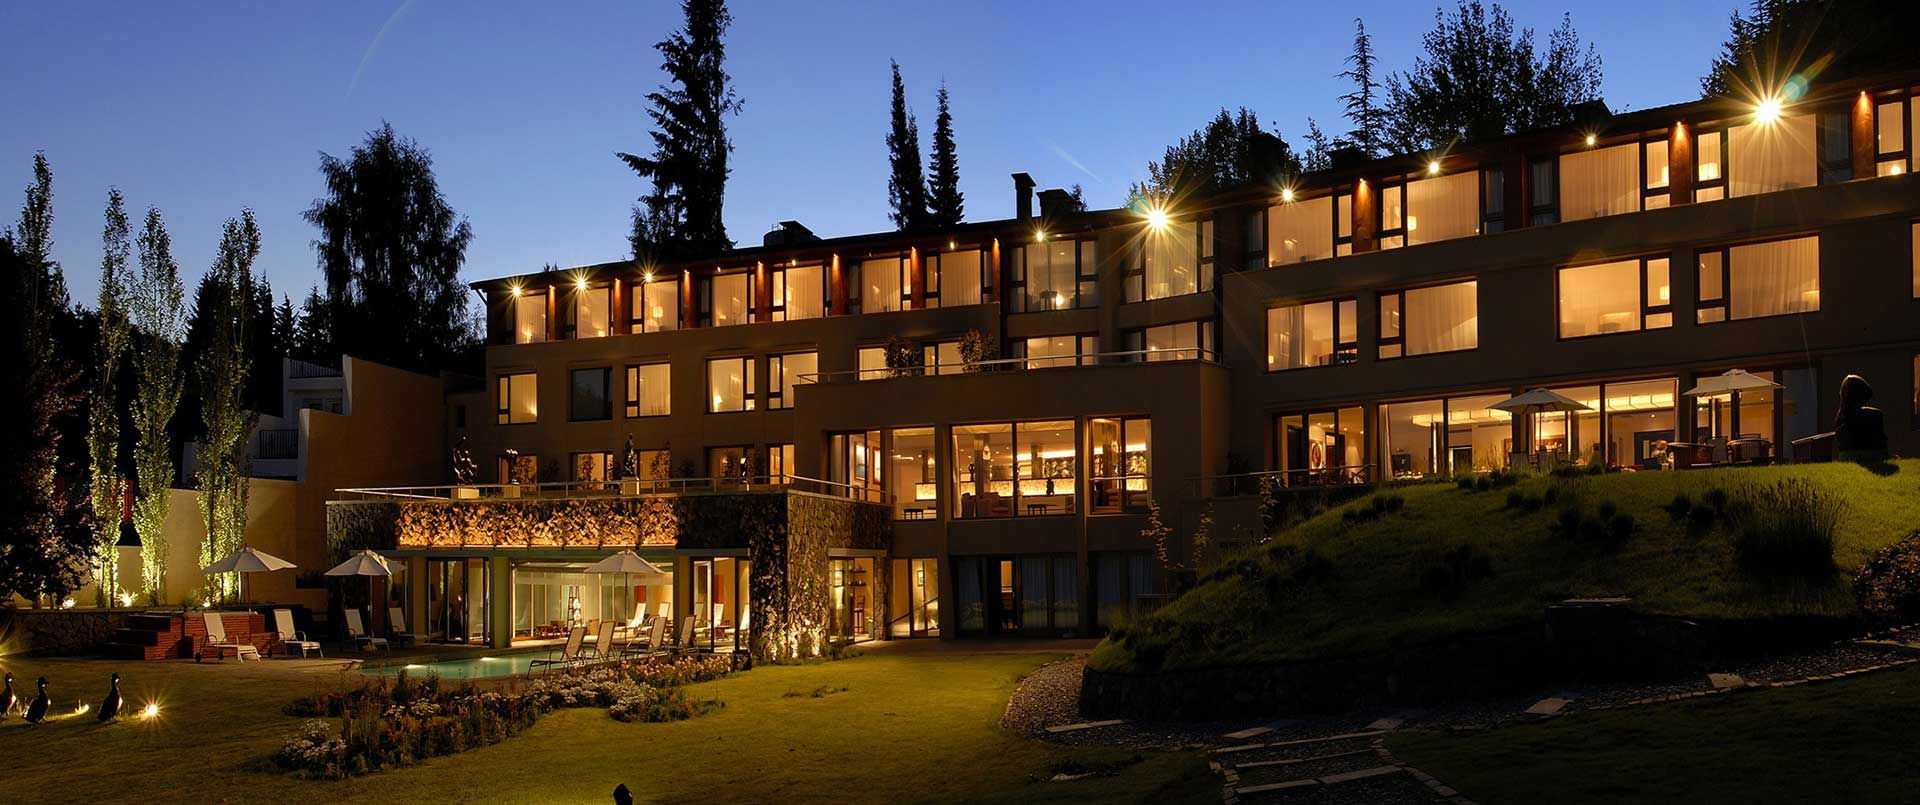 El Casco Art Hotel, Bariloche, Lake District